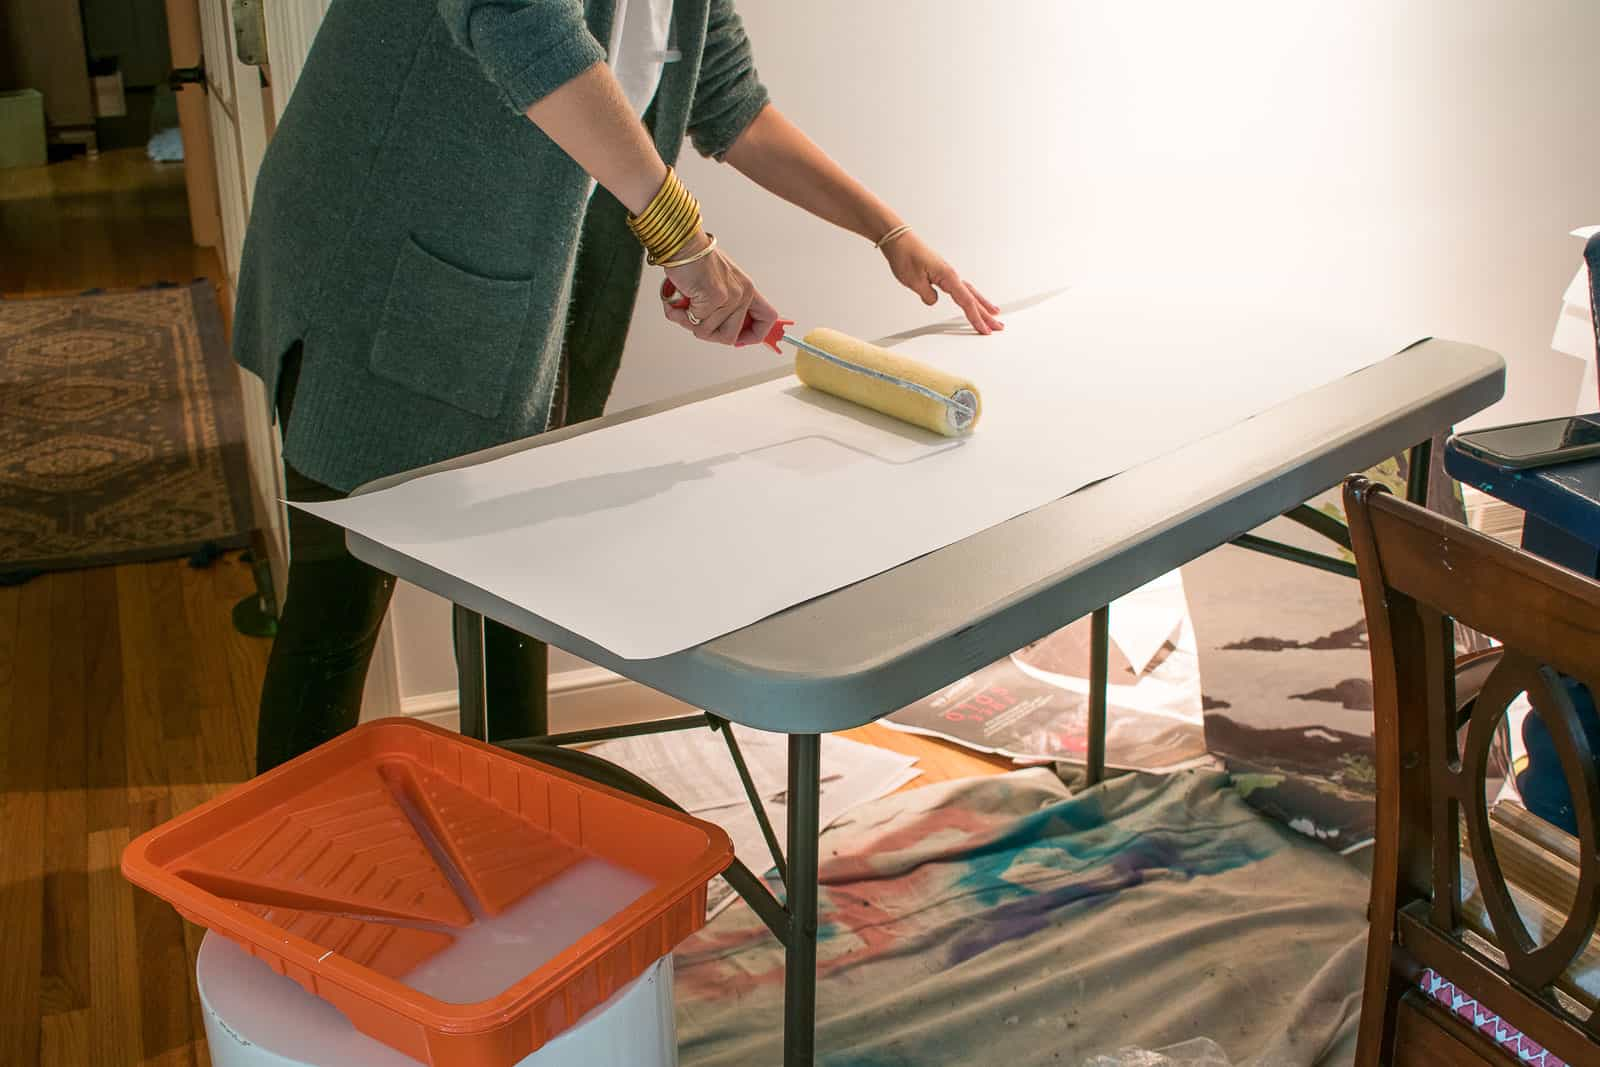 roll starch onto wallpaper and hang